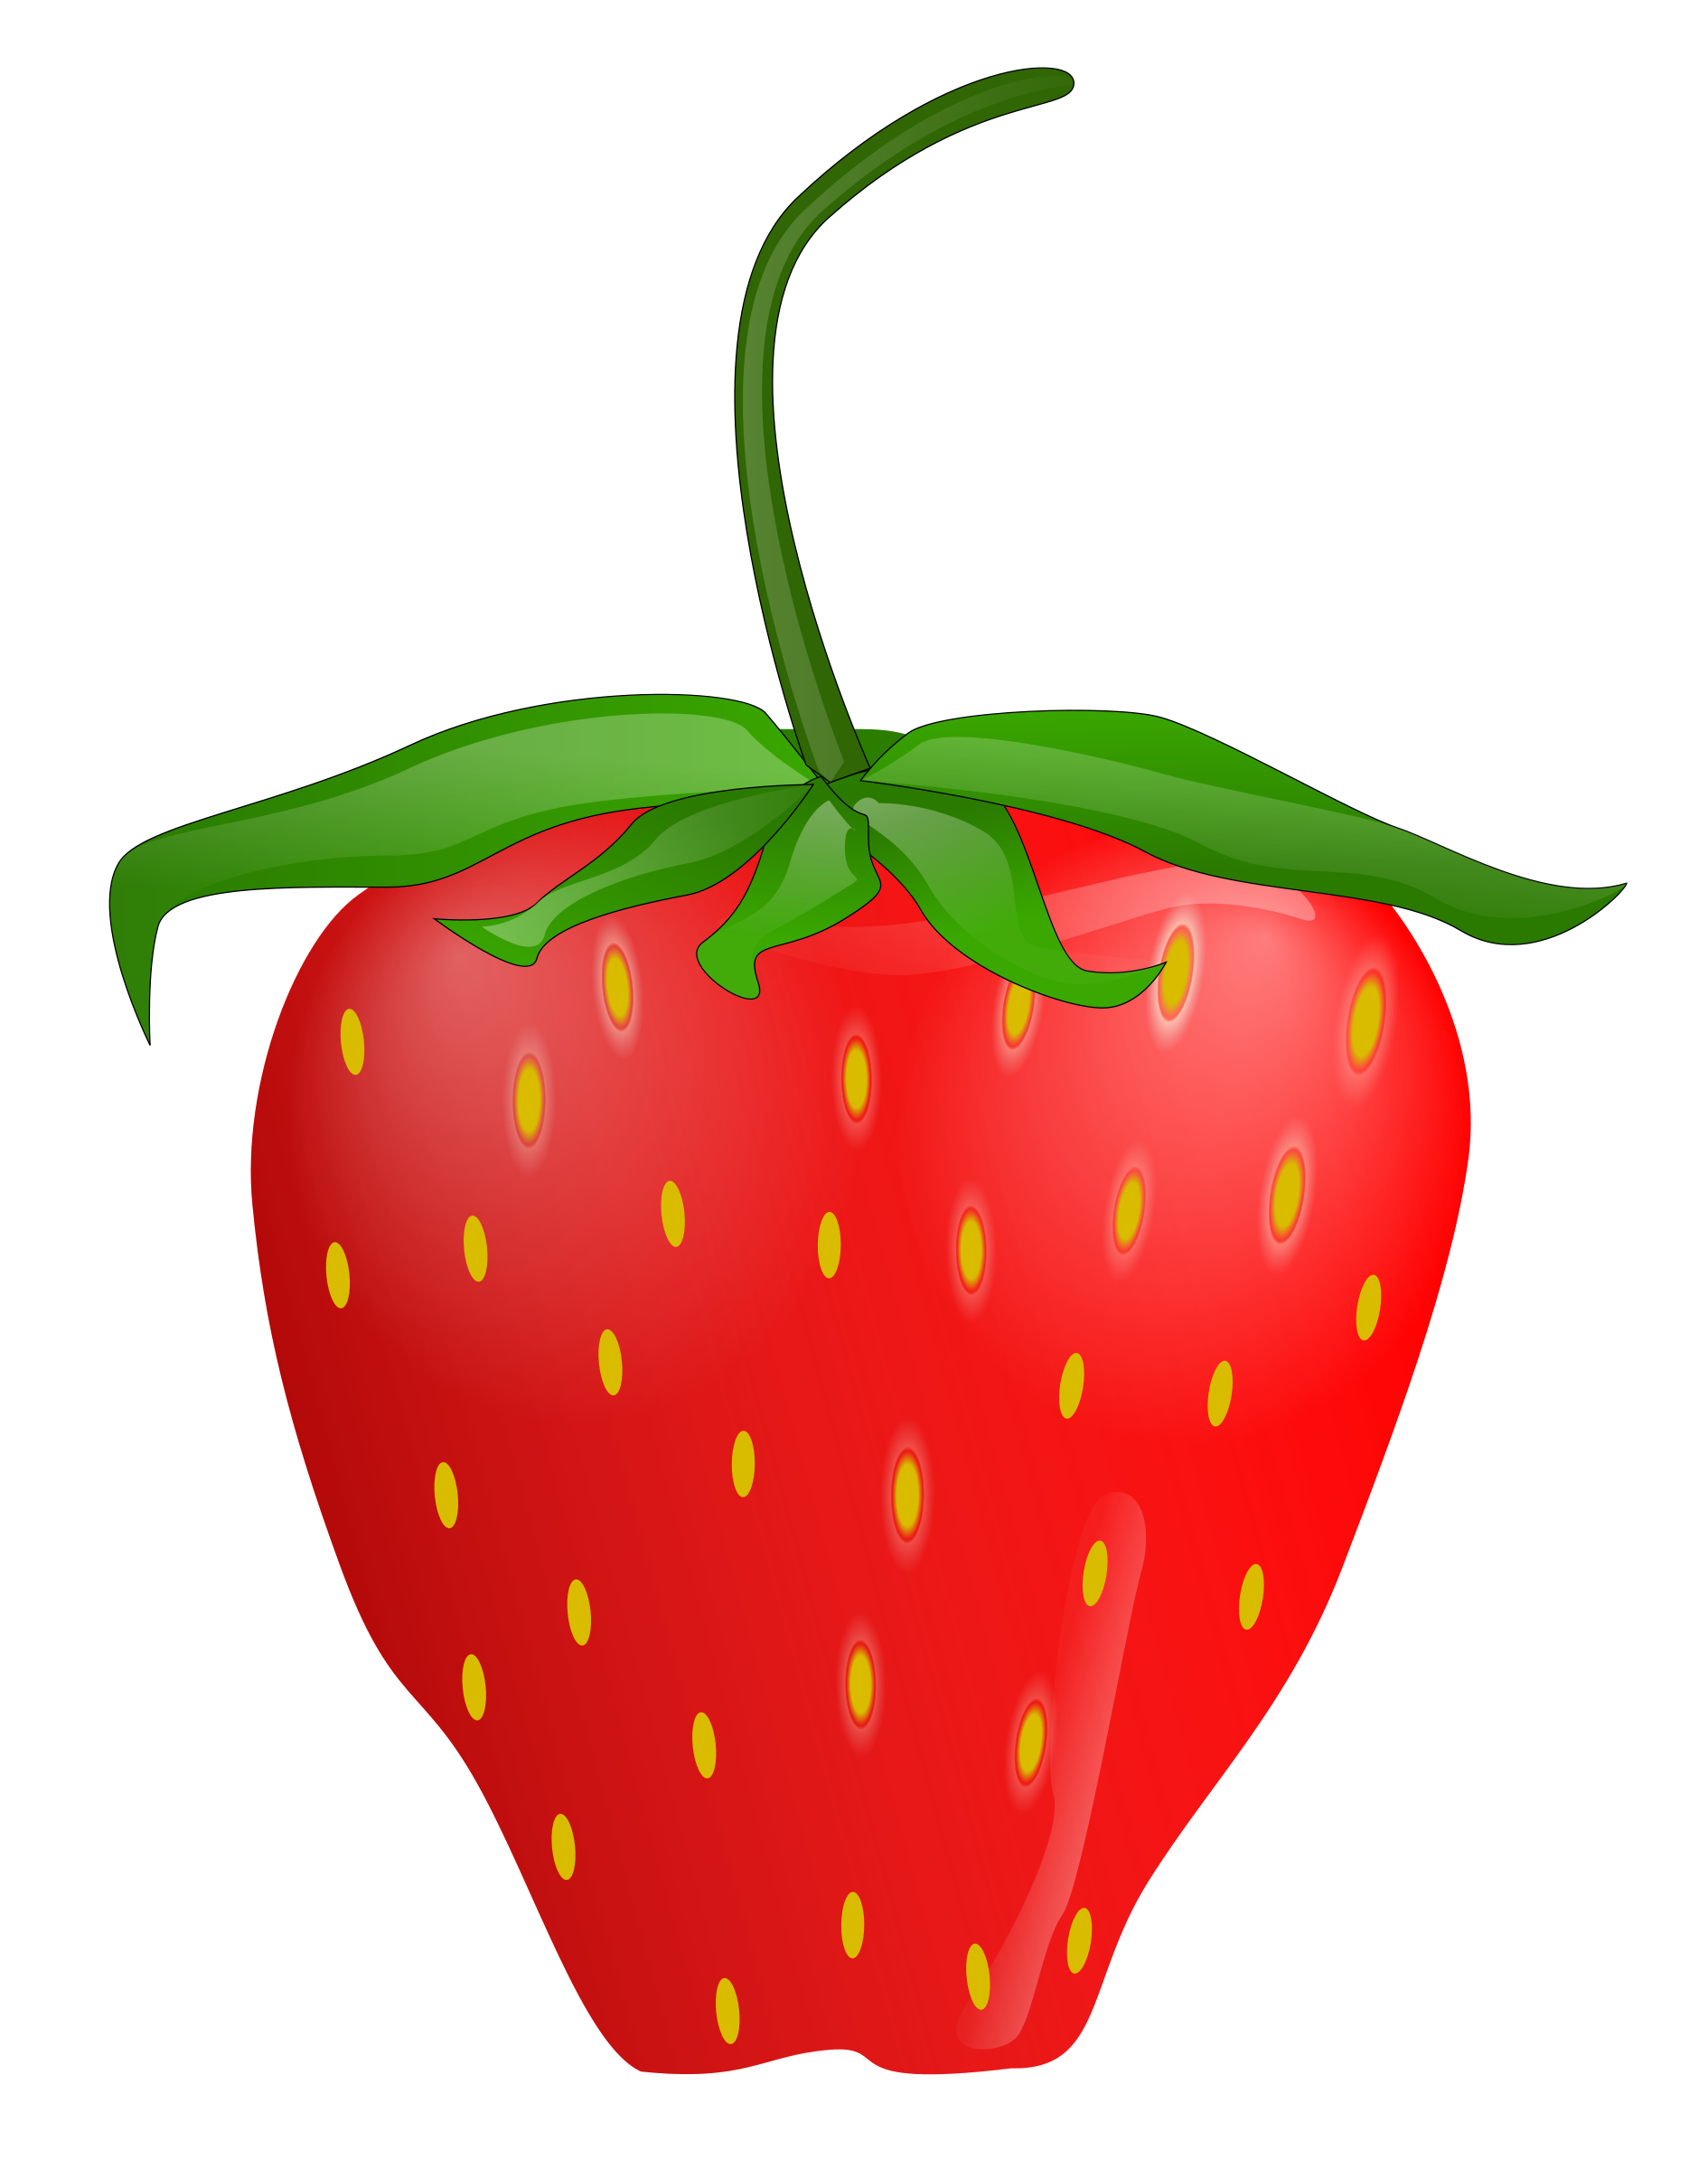 Strawberry clip art free. Strawberries clipart face